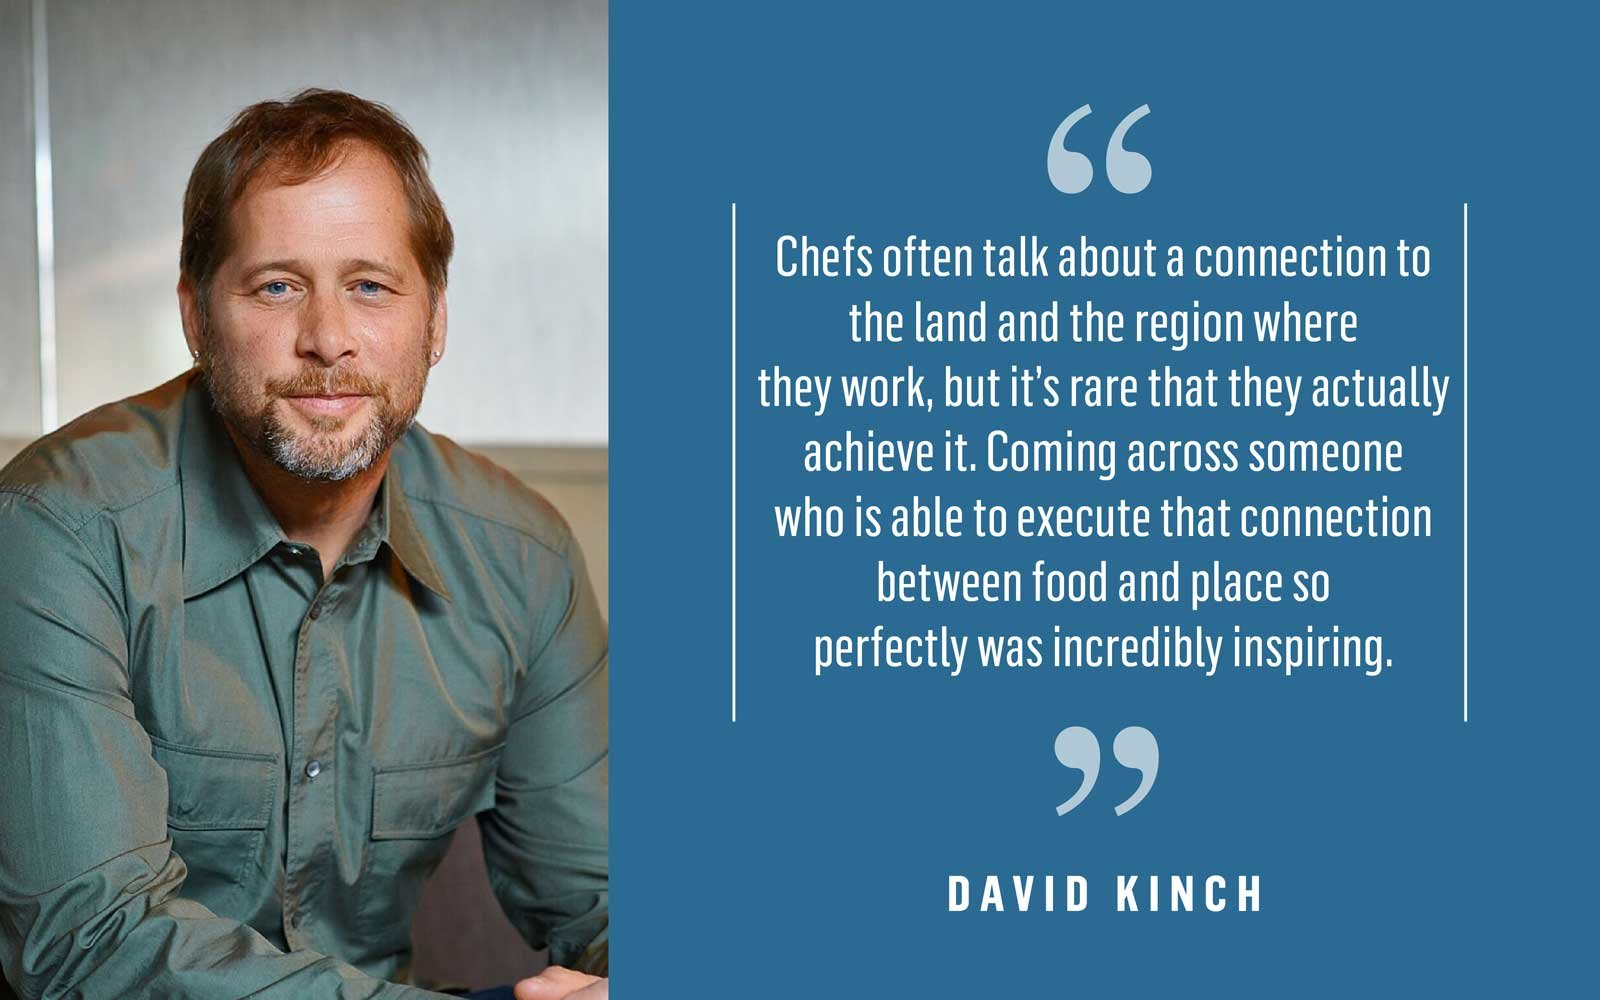 Chef David Kinch